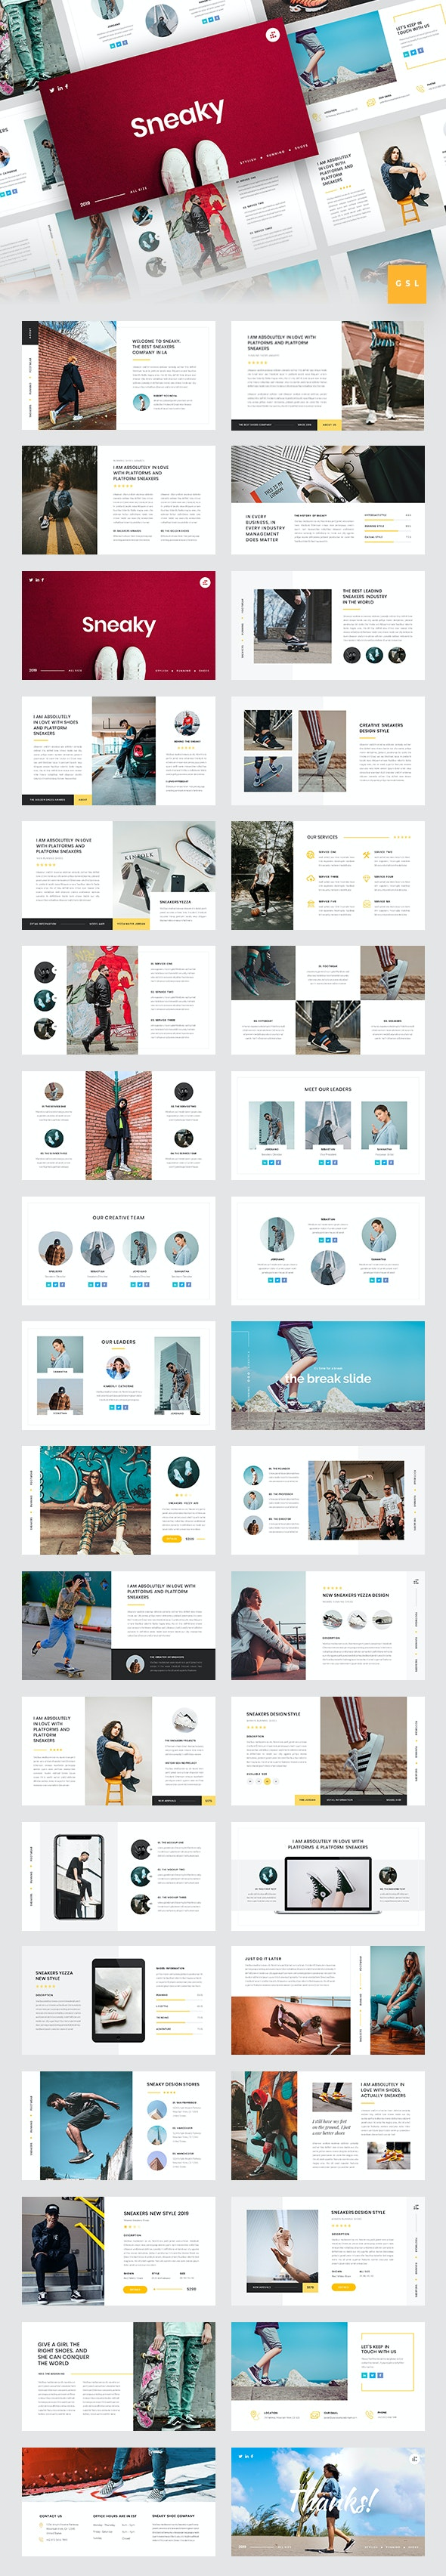 Sneaky - Sneakers Google Slides Template - Google Slides Presentation Templates